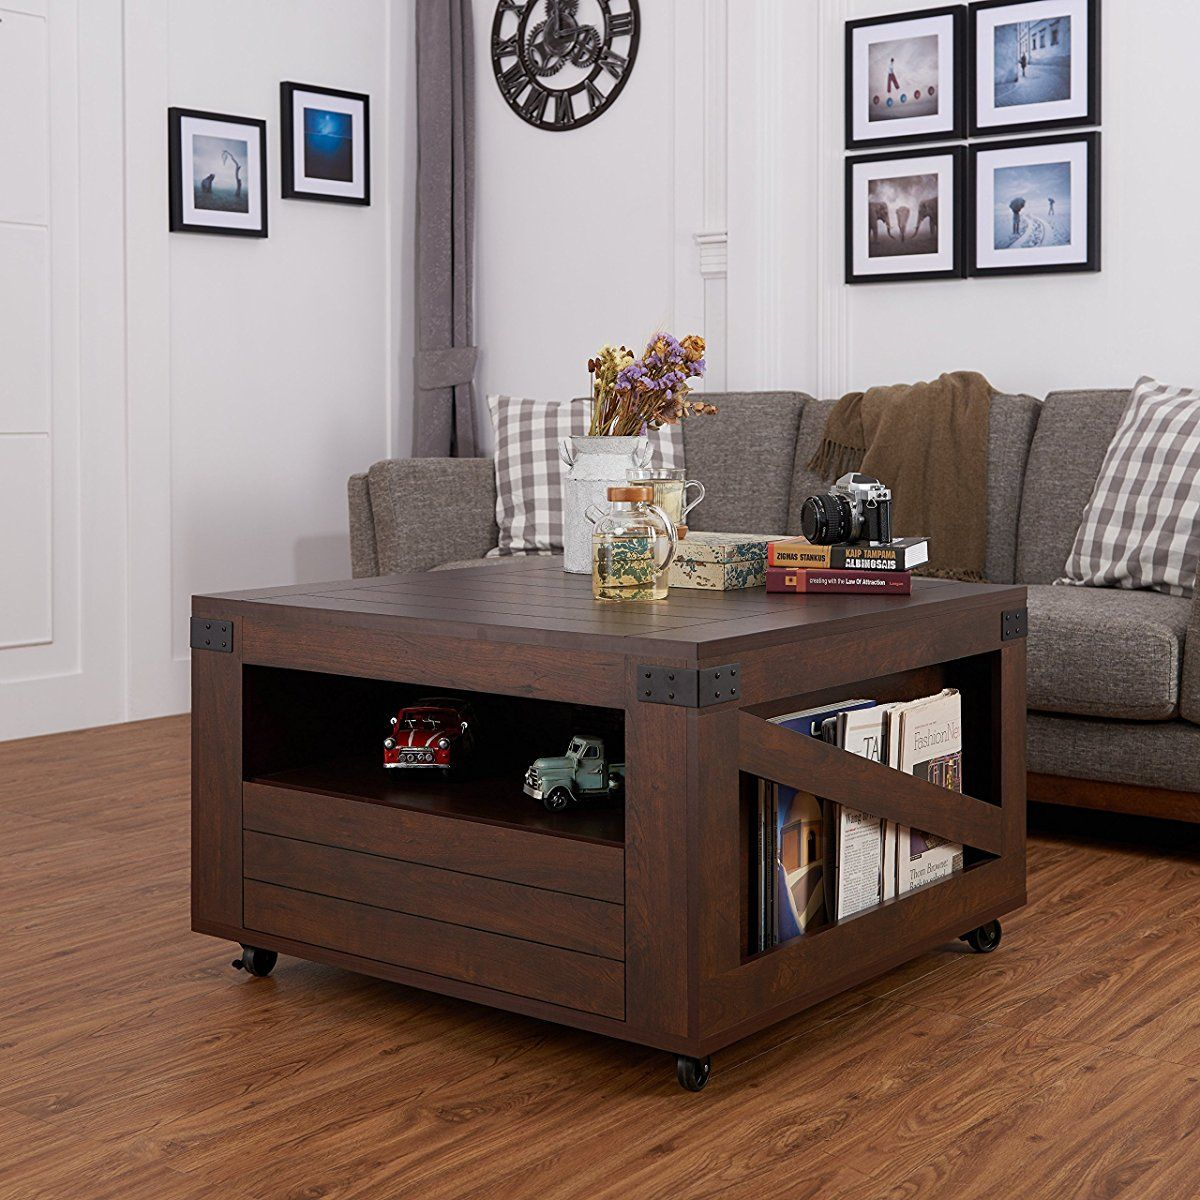 Storage Table On Wheels Iohomes Clyde Industrial Coffee Table Vintage Walnut Coffee